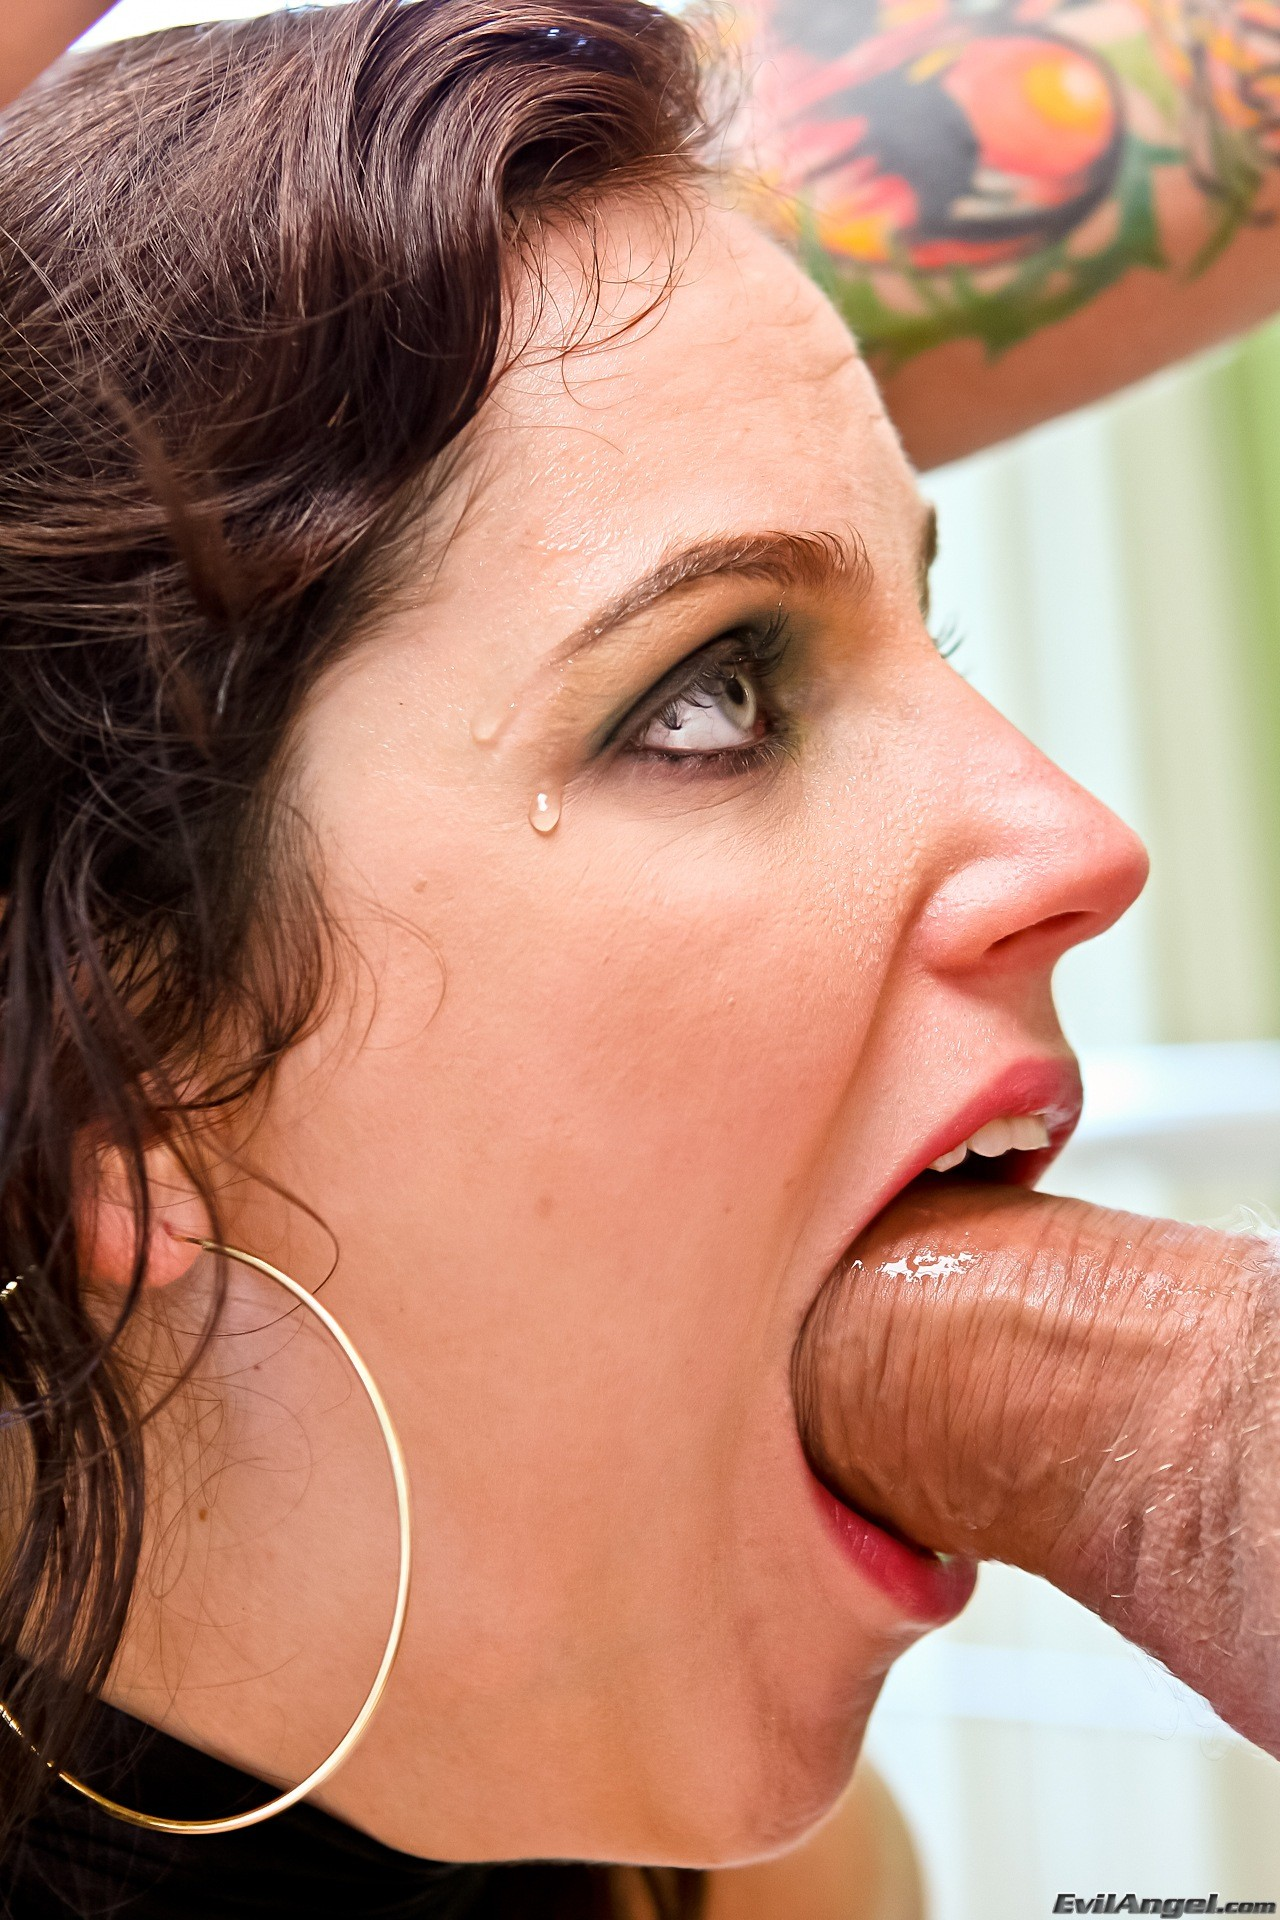 Woman who deepthroat kardashian